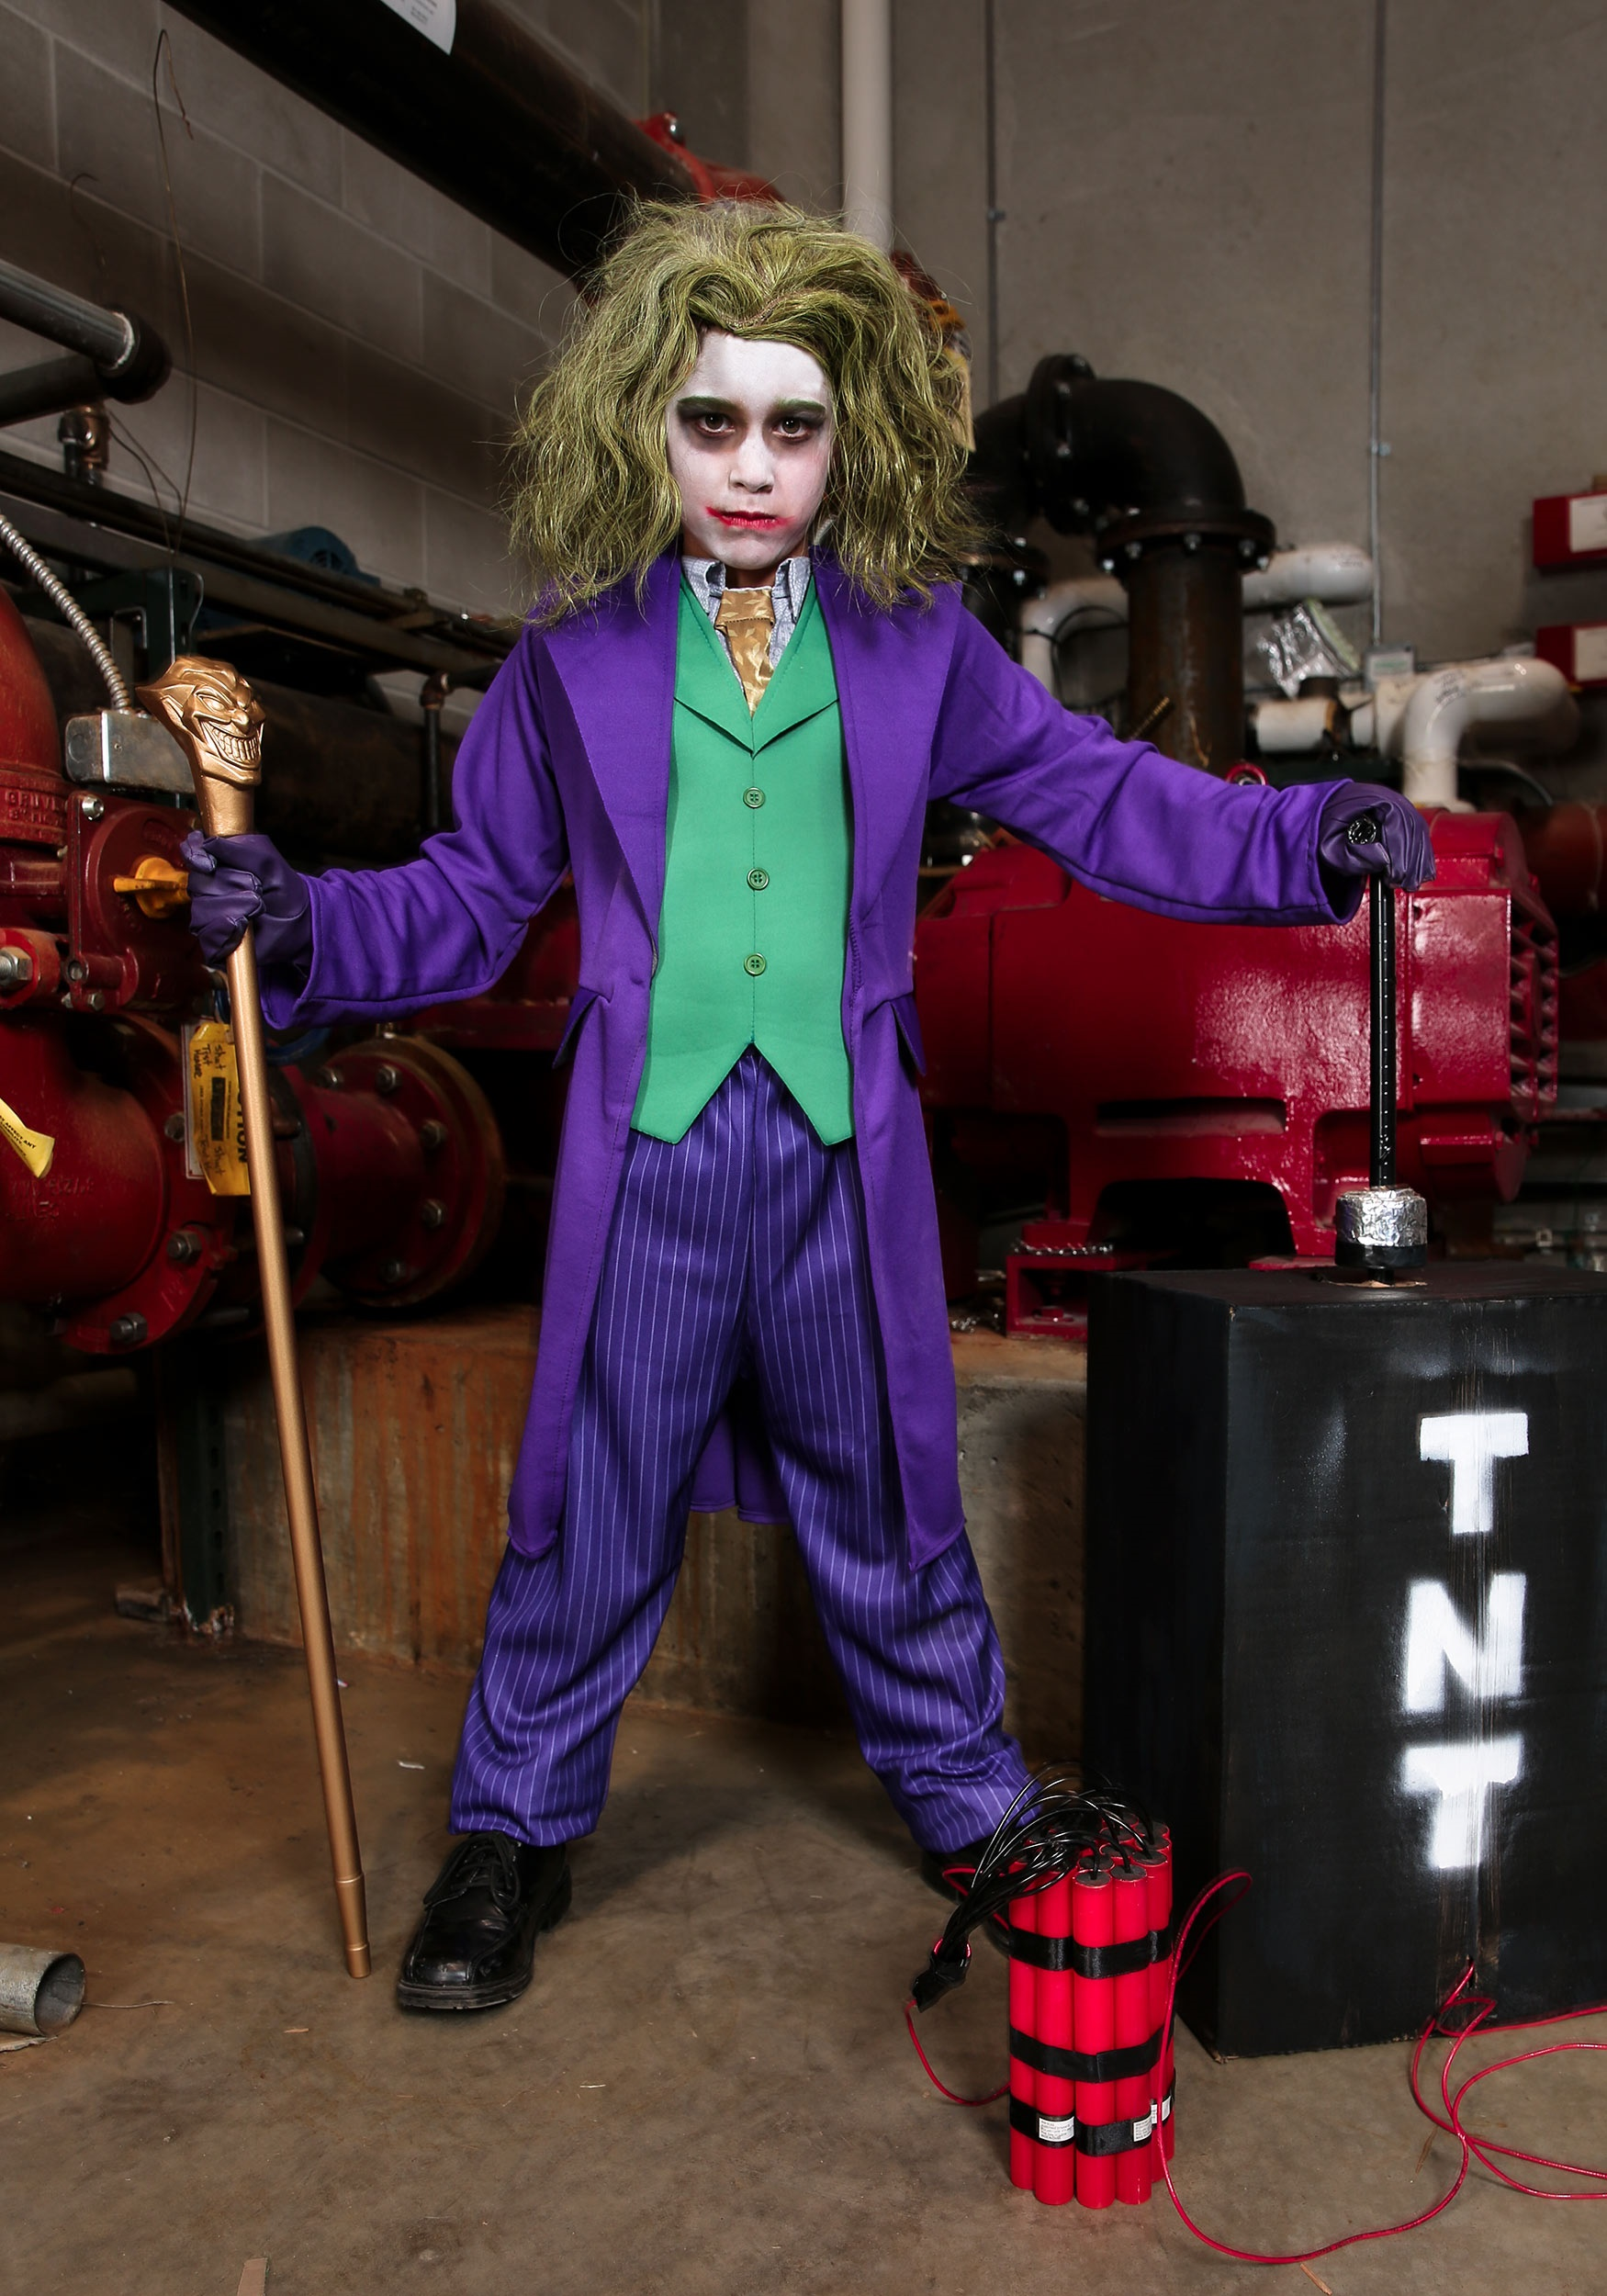 sc 1 st  Halloween Costumes & Deluxe Child Joker Costume